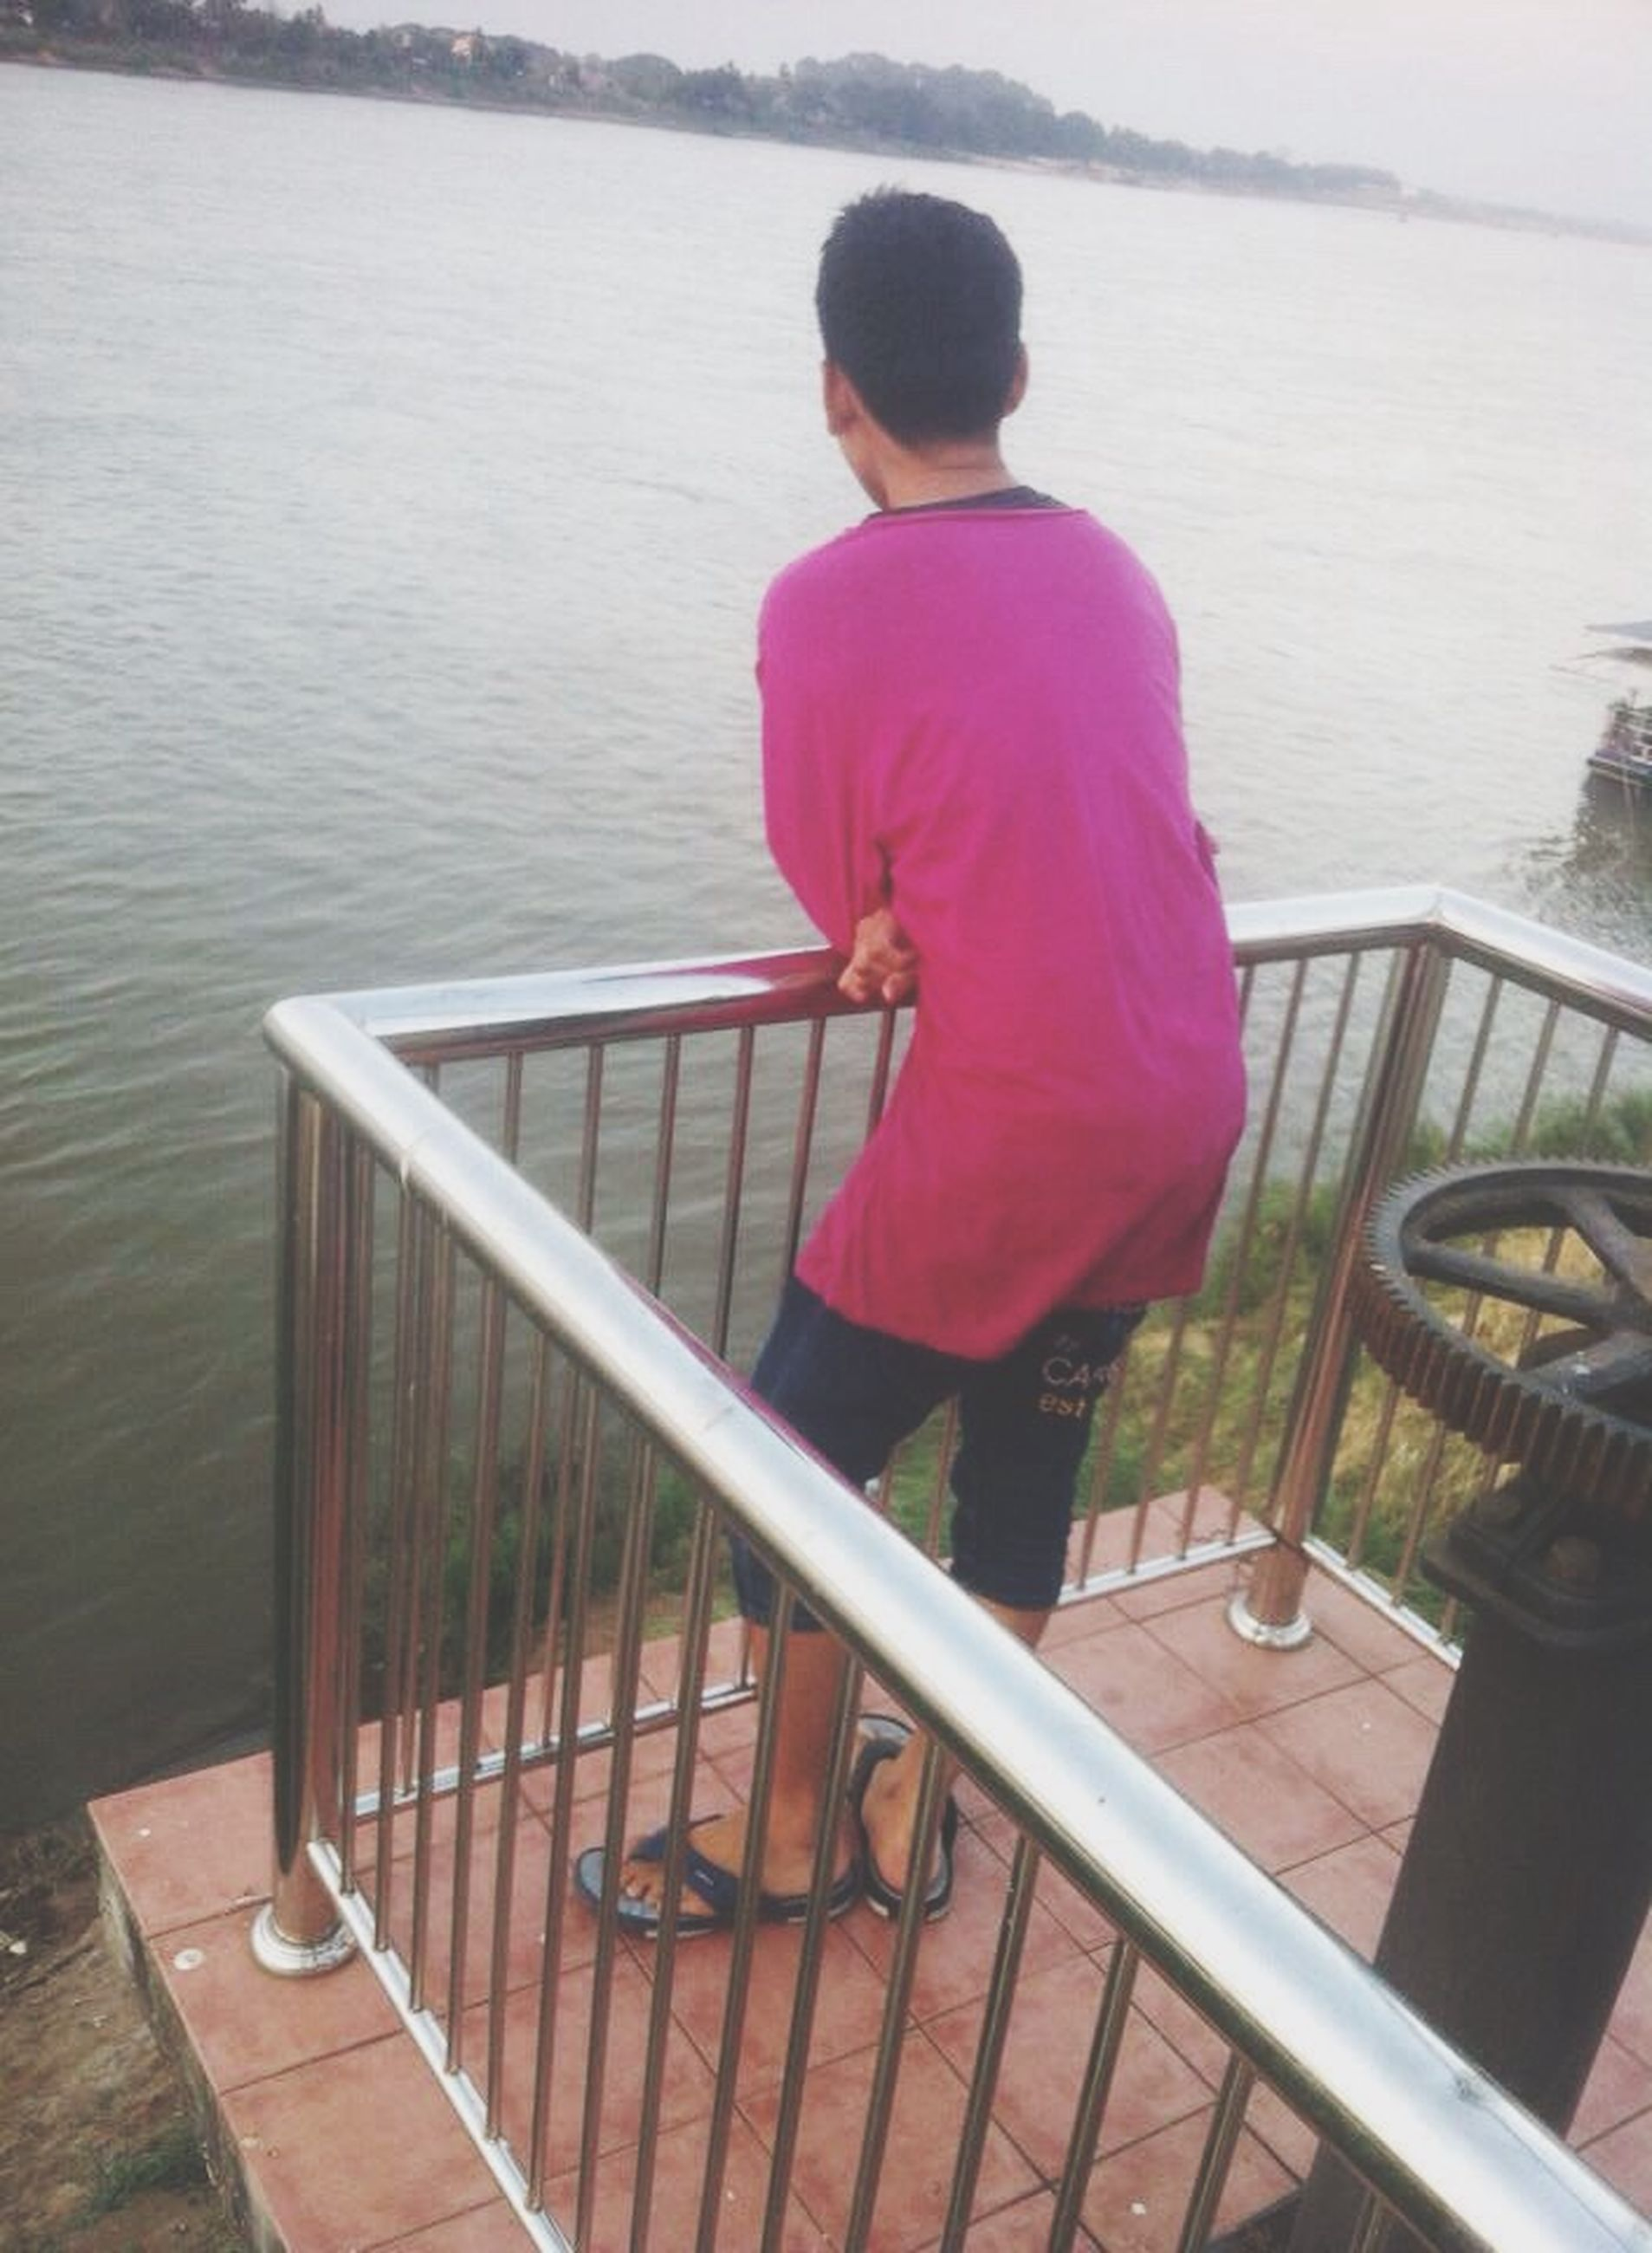 water, railing, full length, sitting, pier, lifestyles, leisure activity, casual clothing, rear view, lake, wood - material, relaxation, bench, standing, childhood, day, river, sea